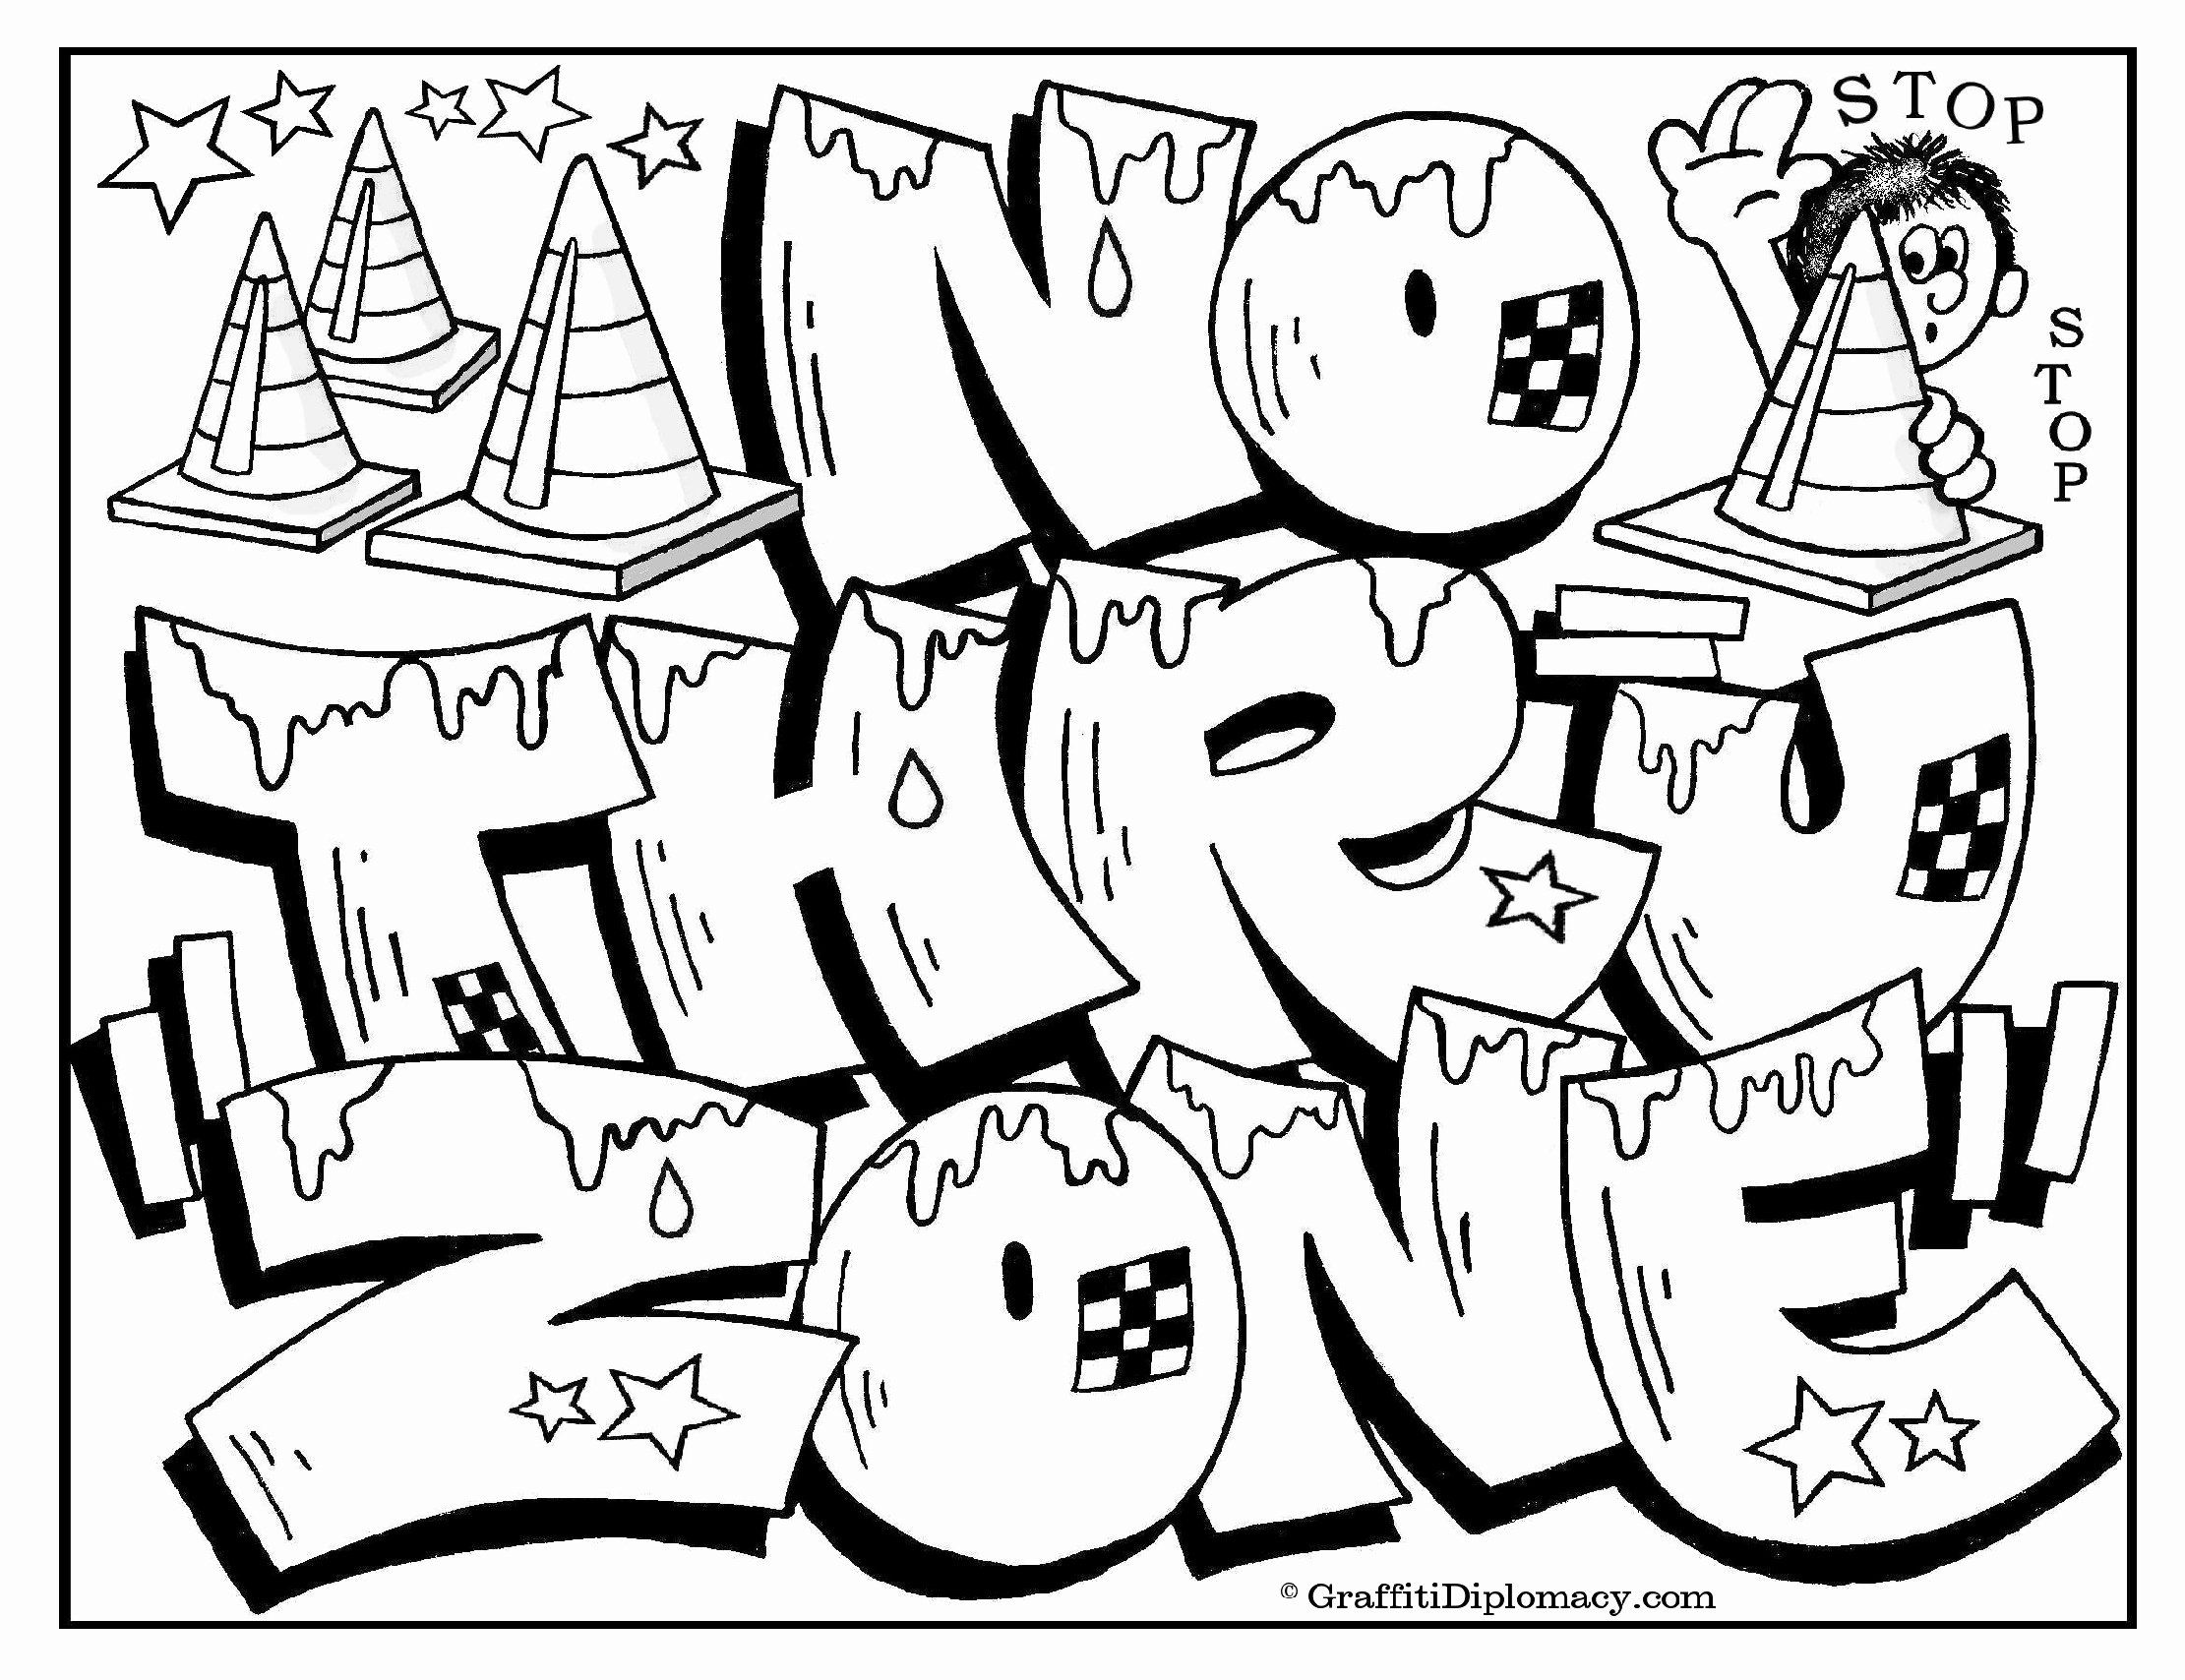 Printable Graffiti Coloring Pages Awesome Graffiti Coloring Pages